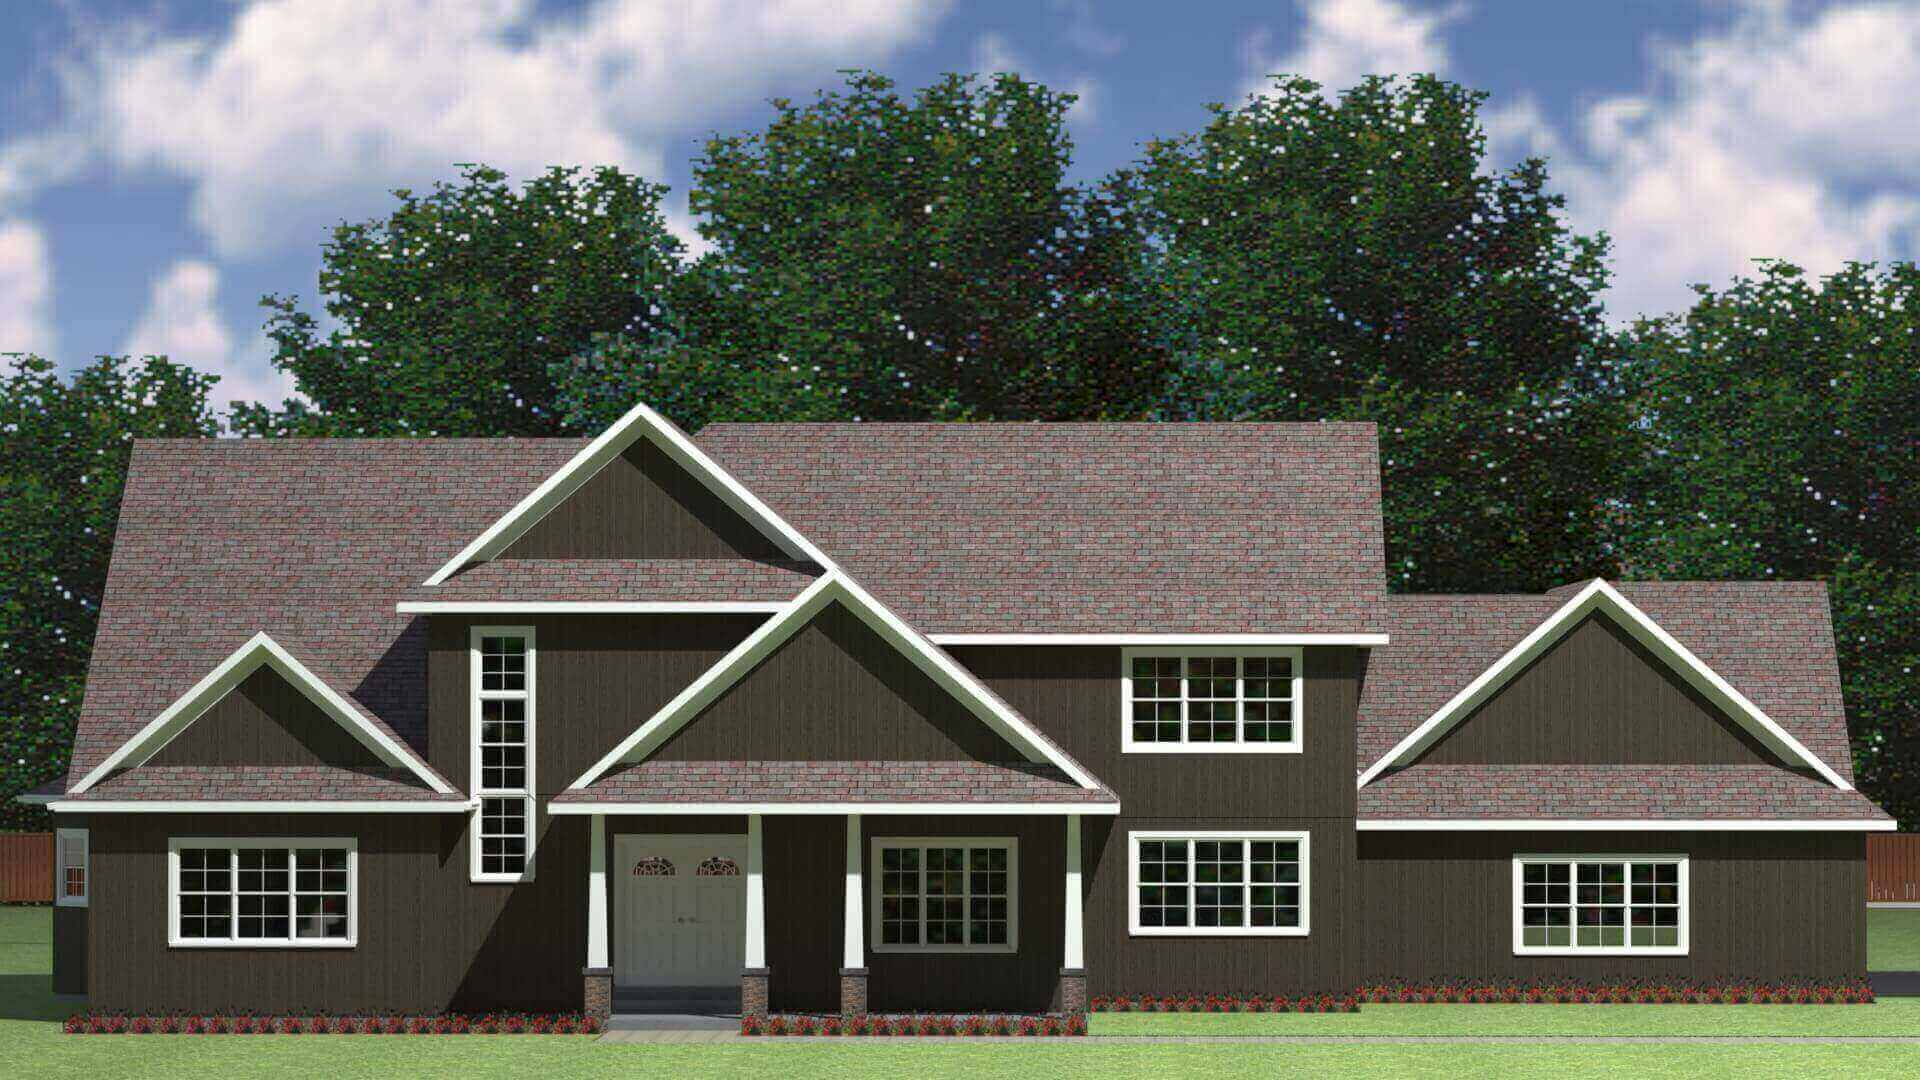 3484 sq.ft. timber mart house exterior rendering